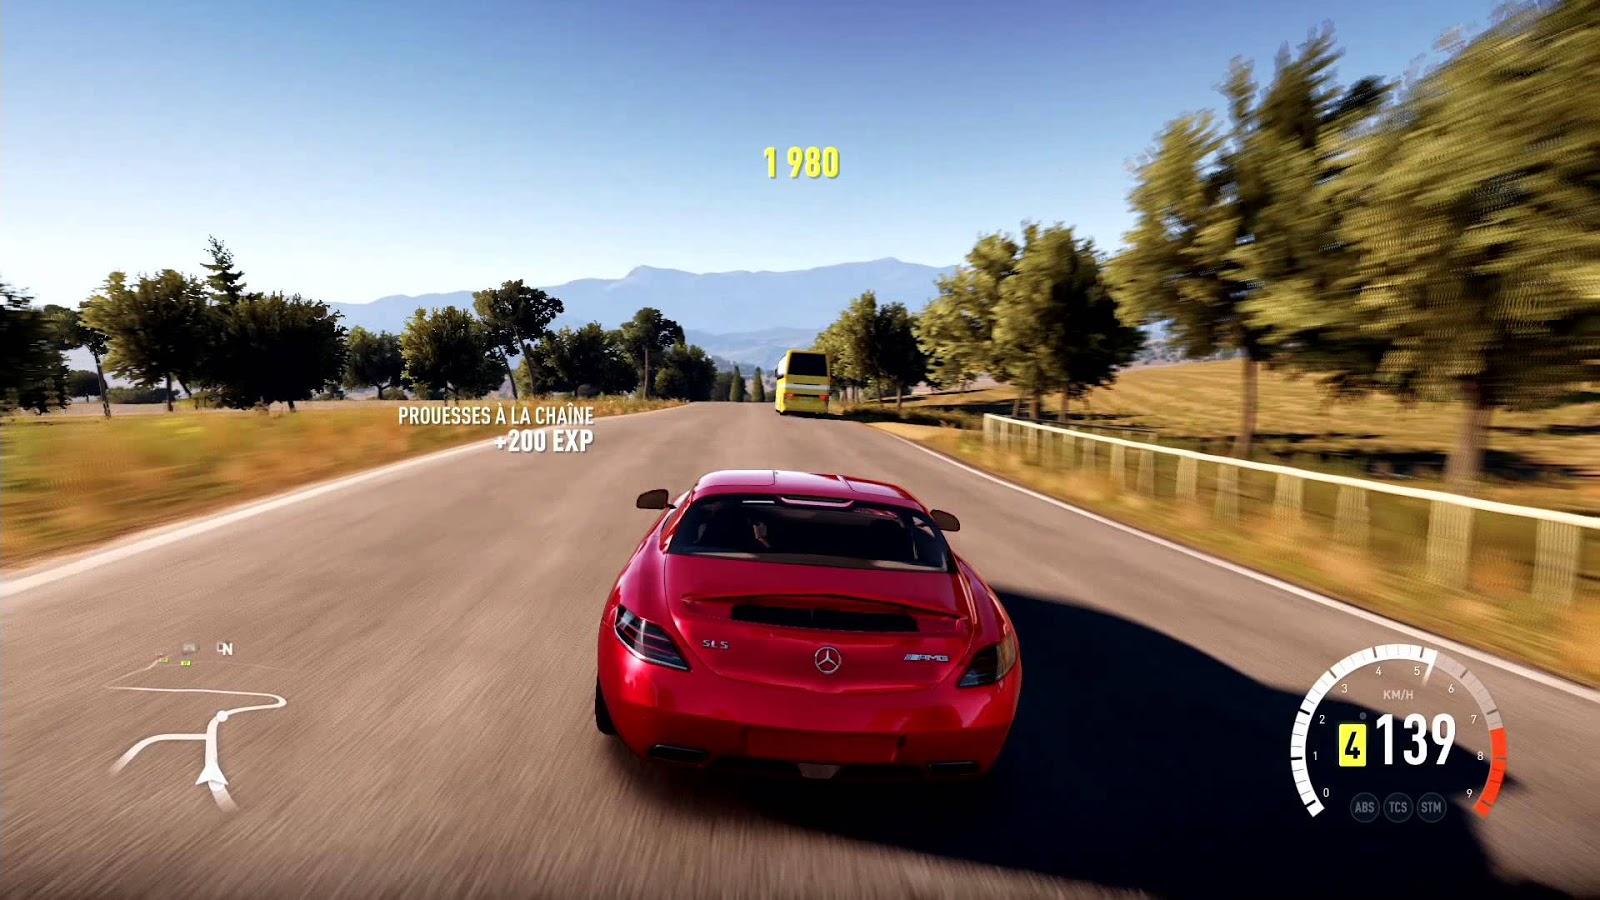 Forza Horizon 3 Game PC Complete Download CODEX GFY - Games For You